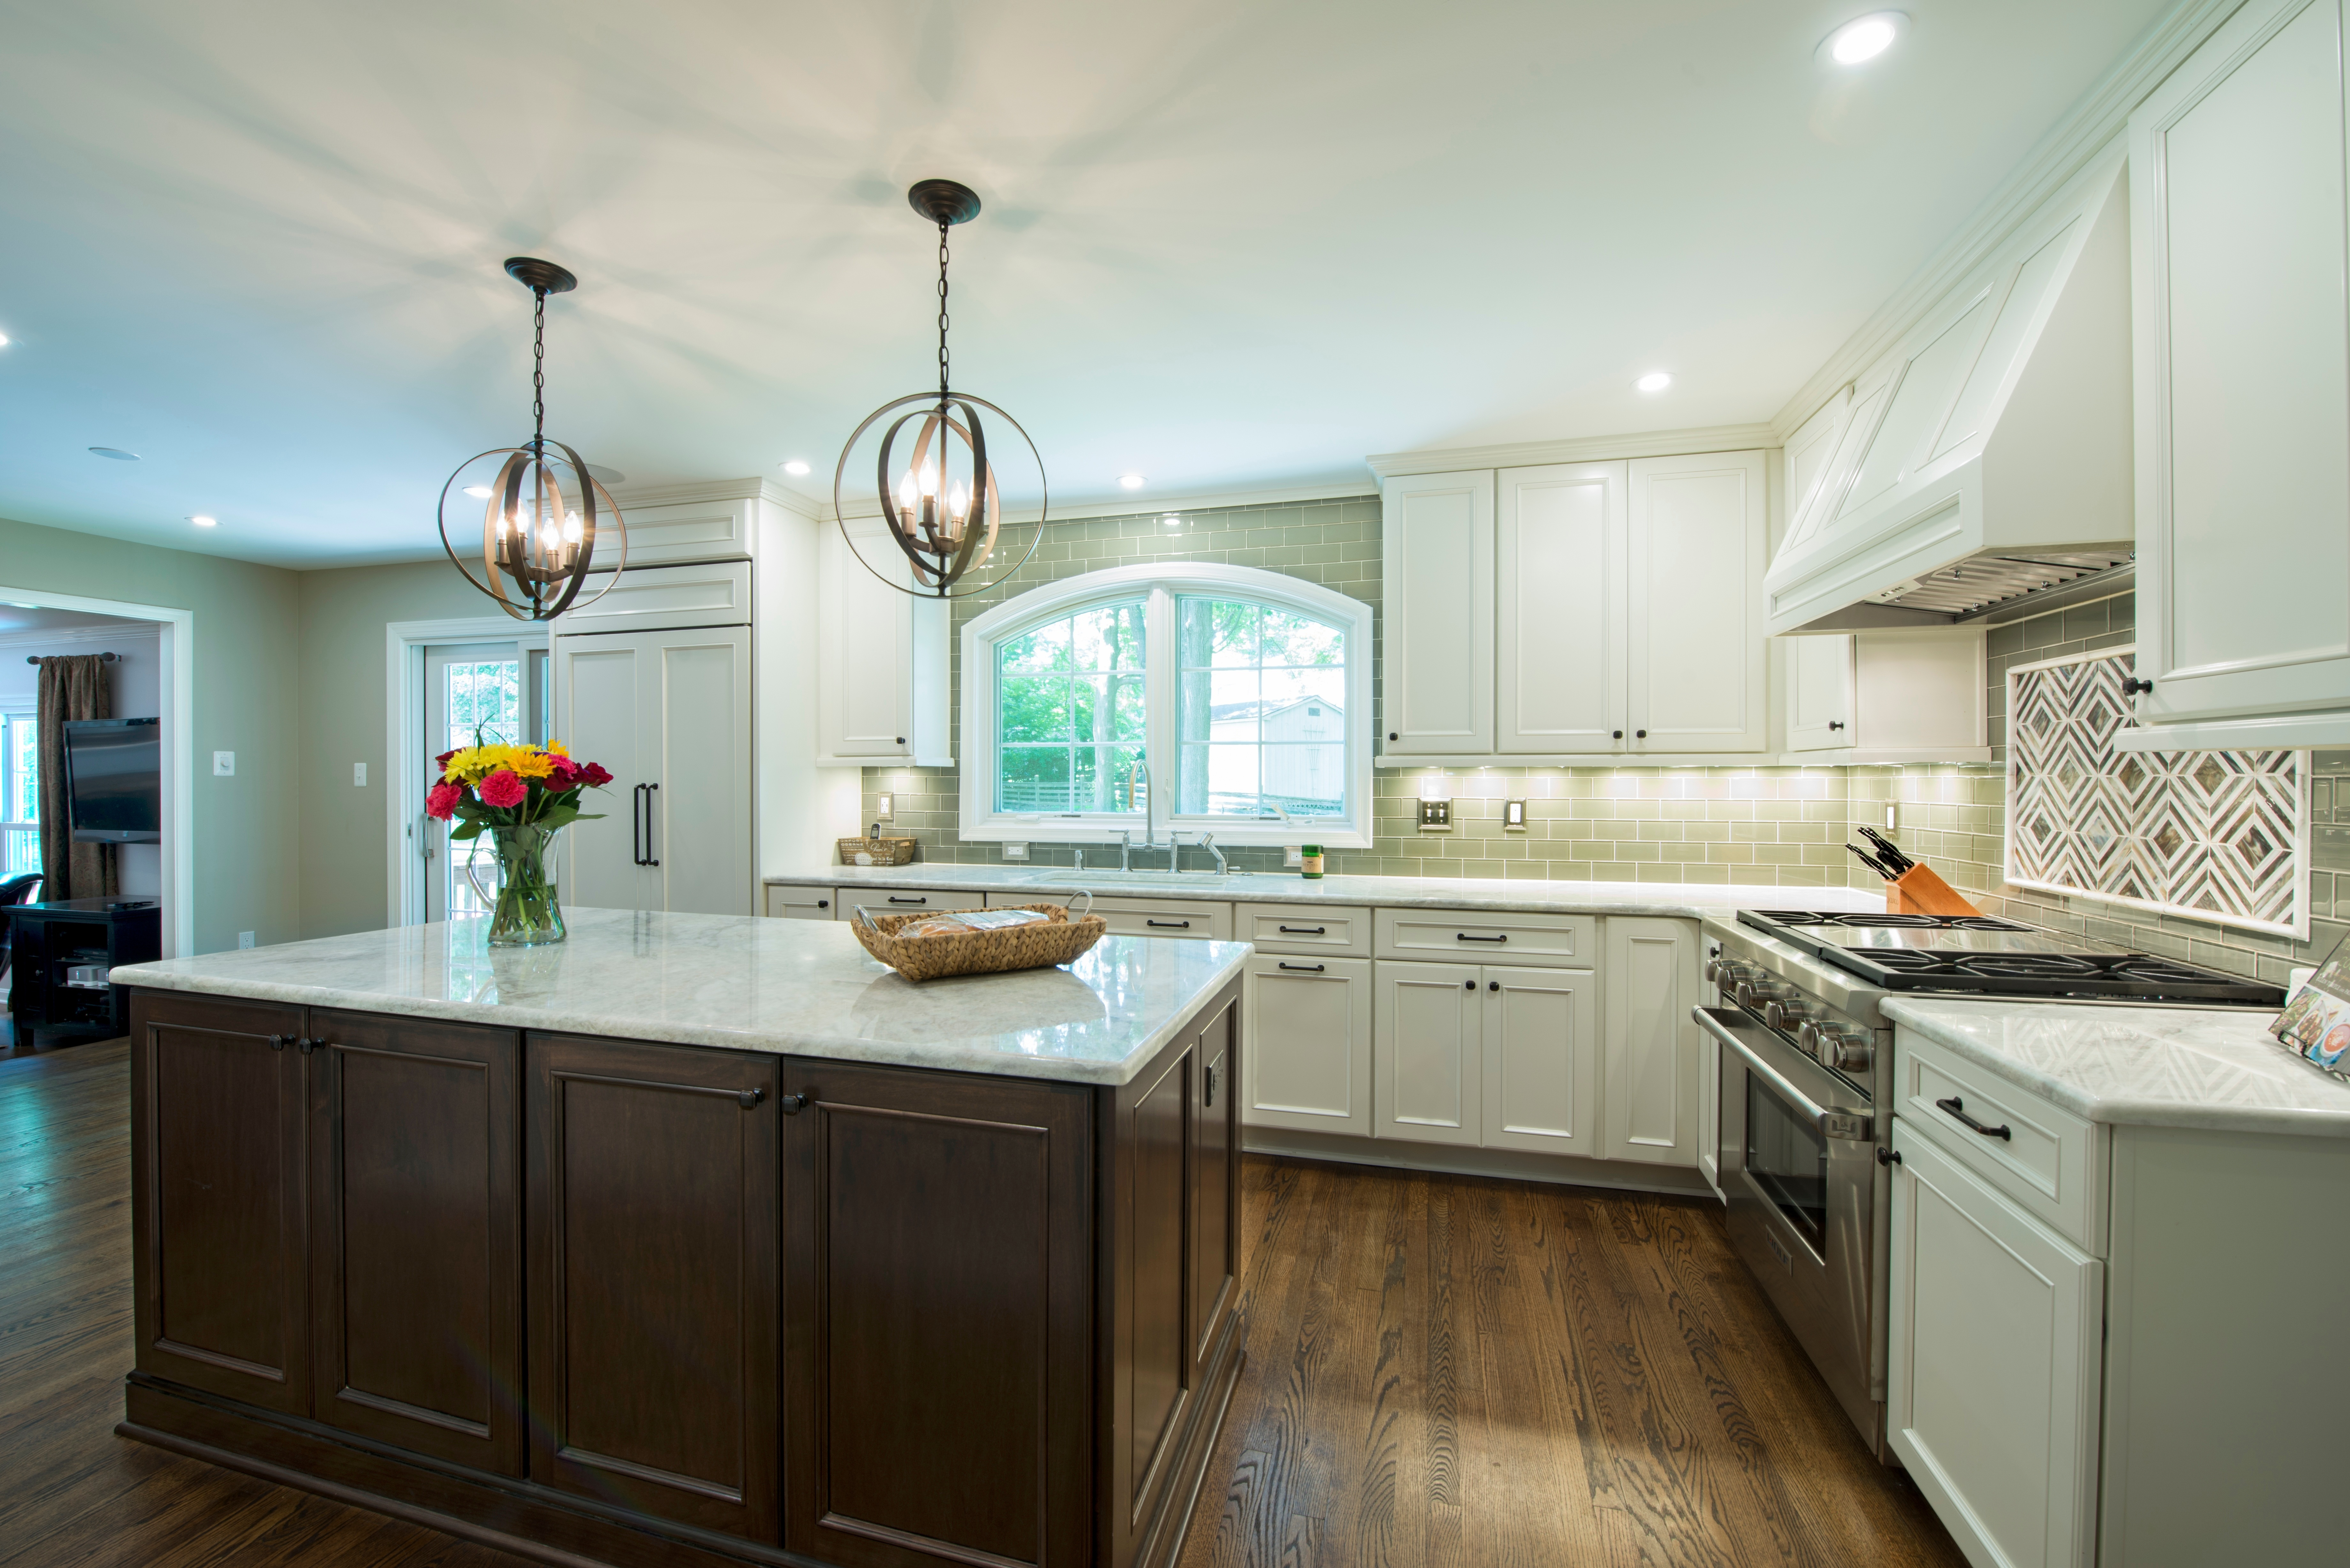 This third example of a transitional kitchen doesnt disappoint similar to our first example this gorgeous kitchen remodel incorporates white and brown